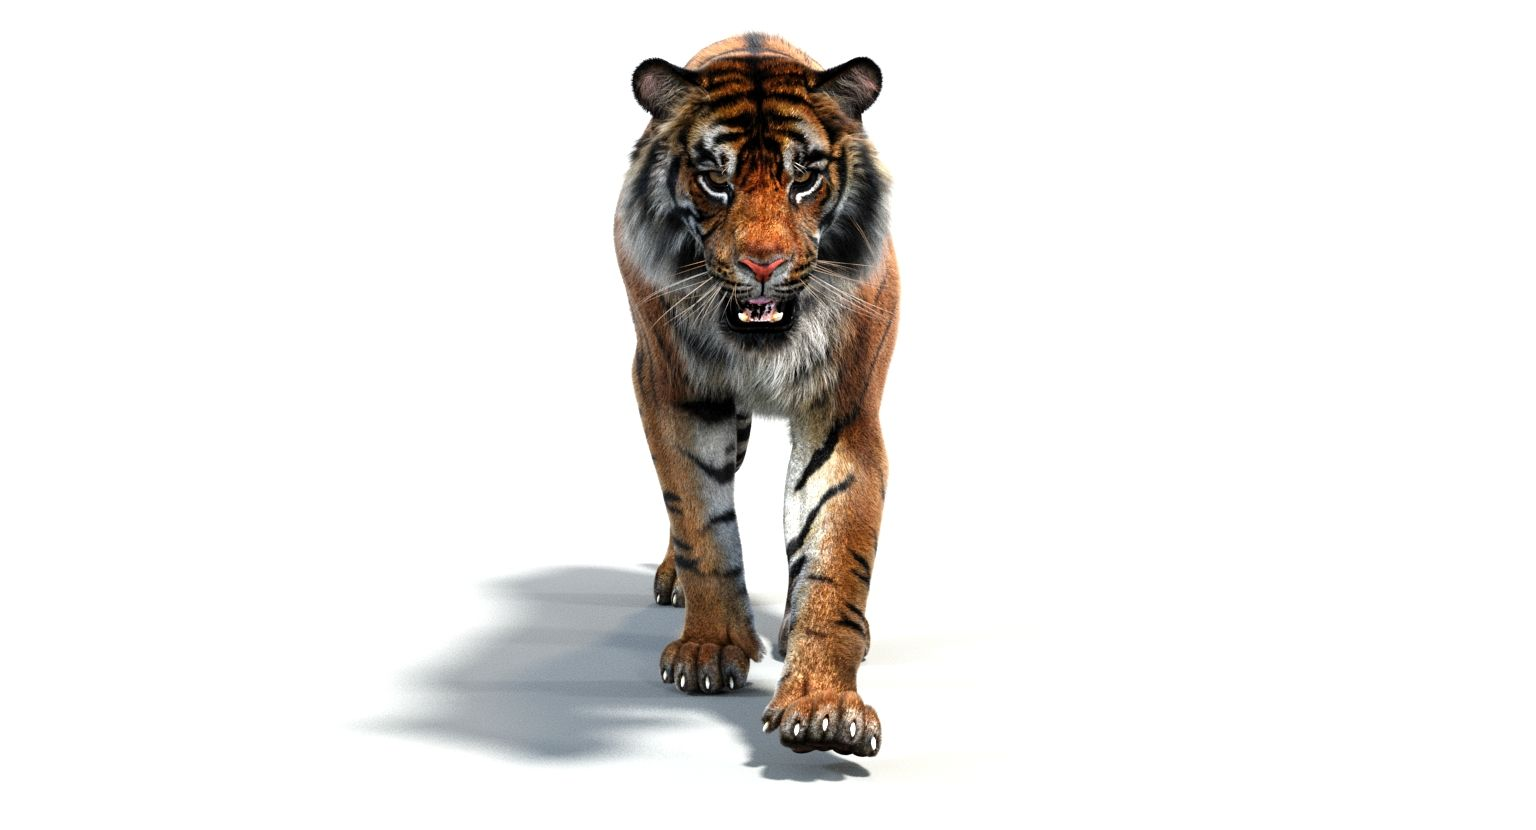 Tiger Walk Cycle Animation By Promax3d Tiger Walking Tiger 3d Model